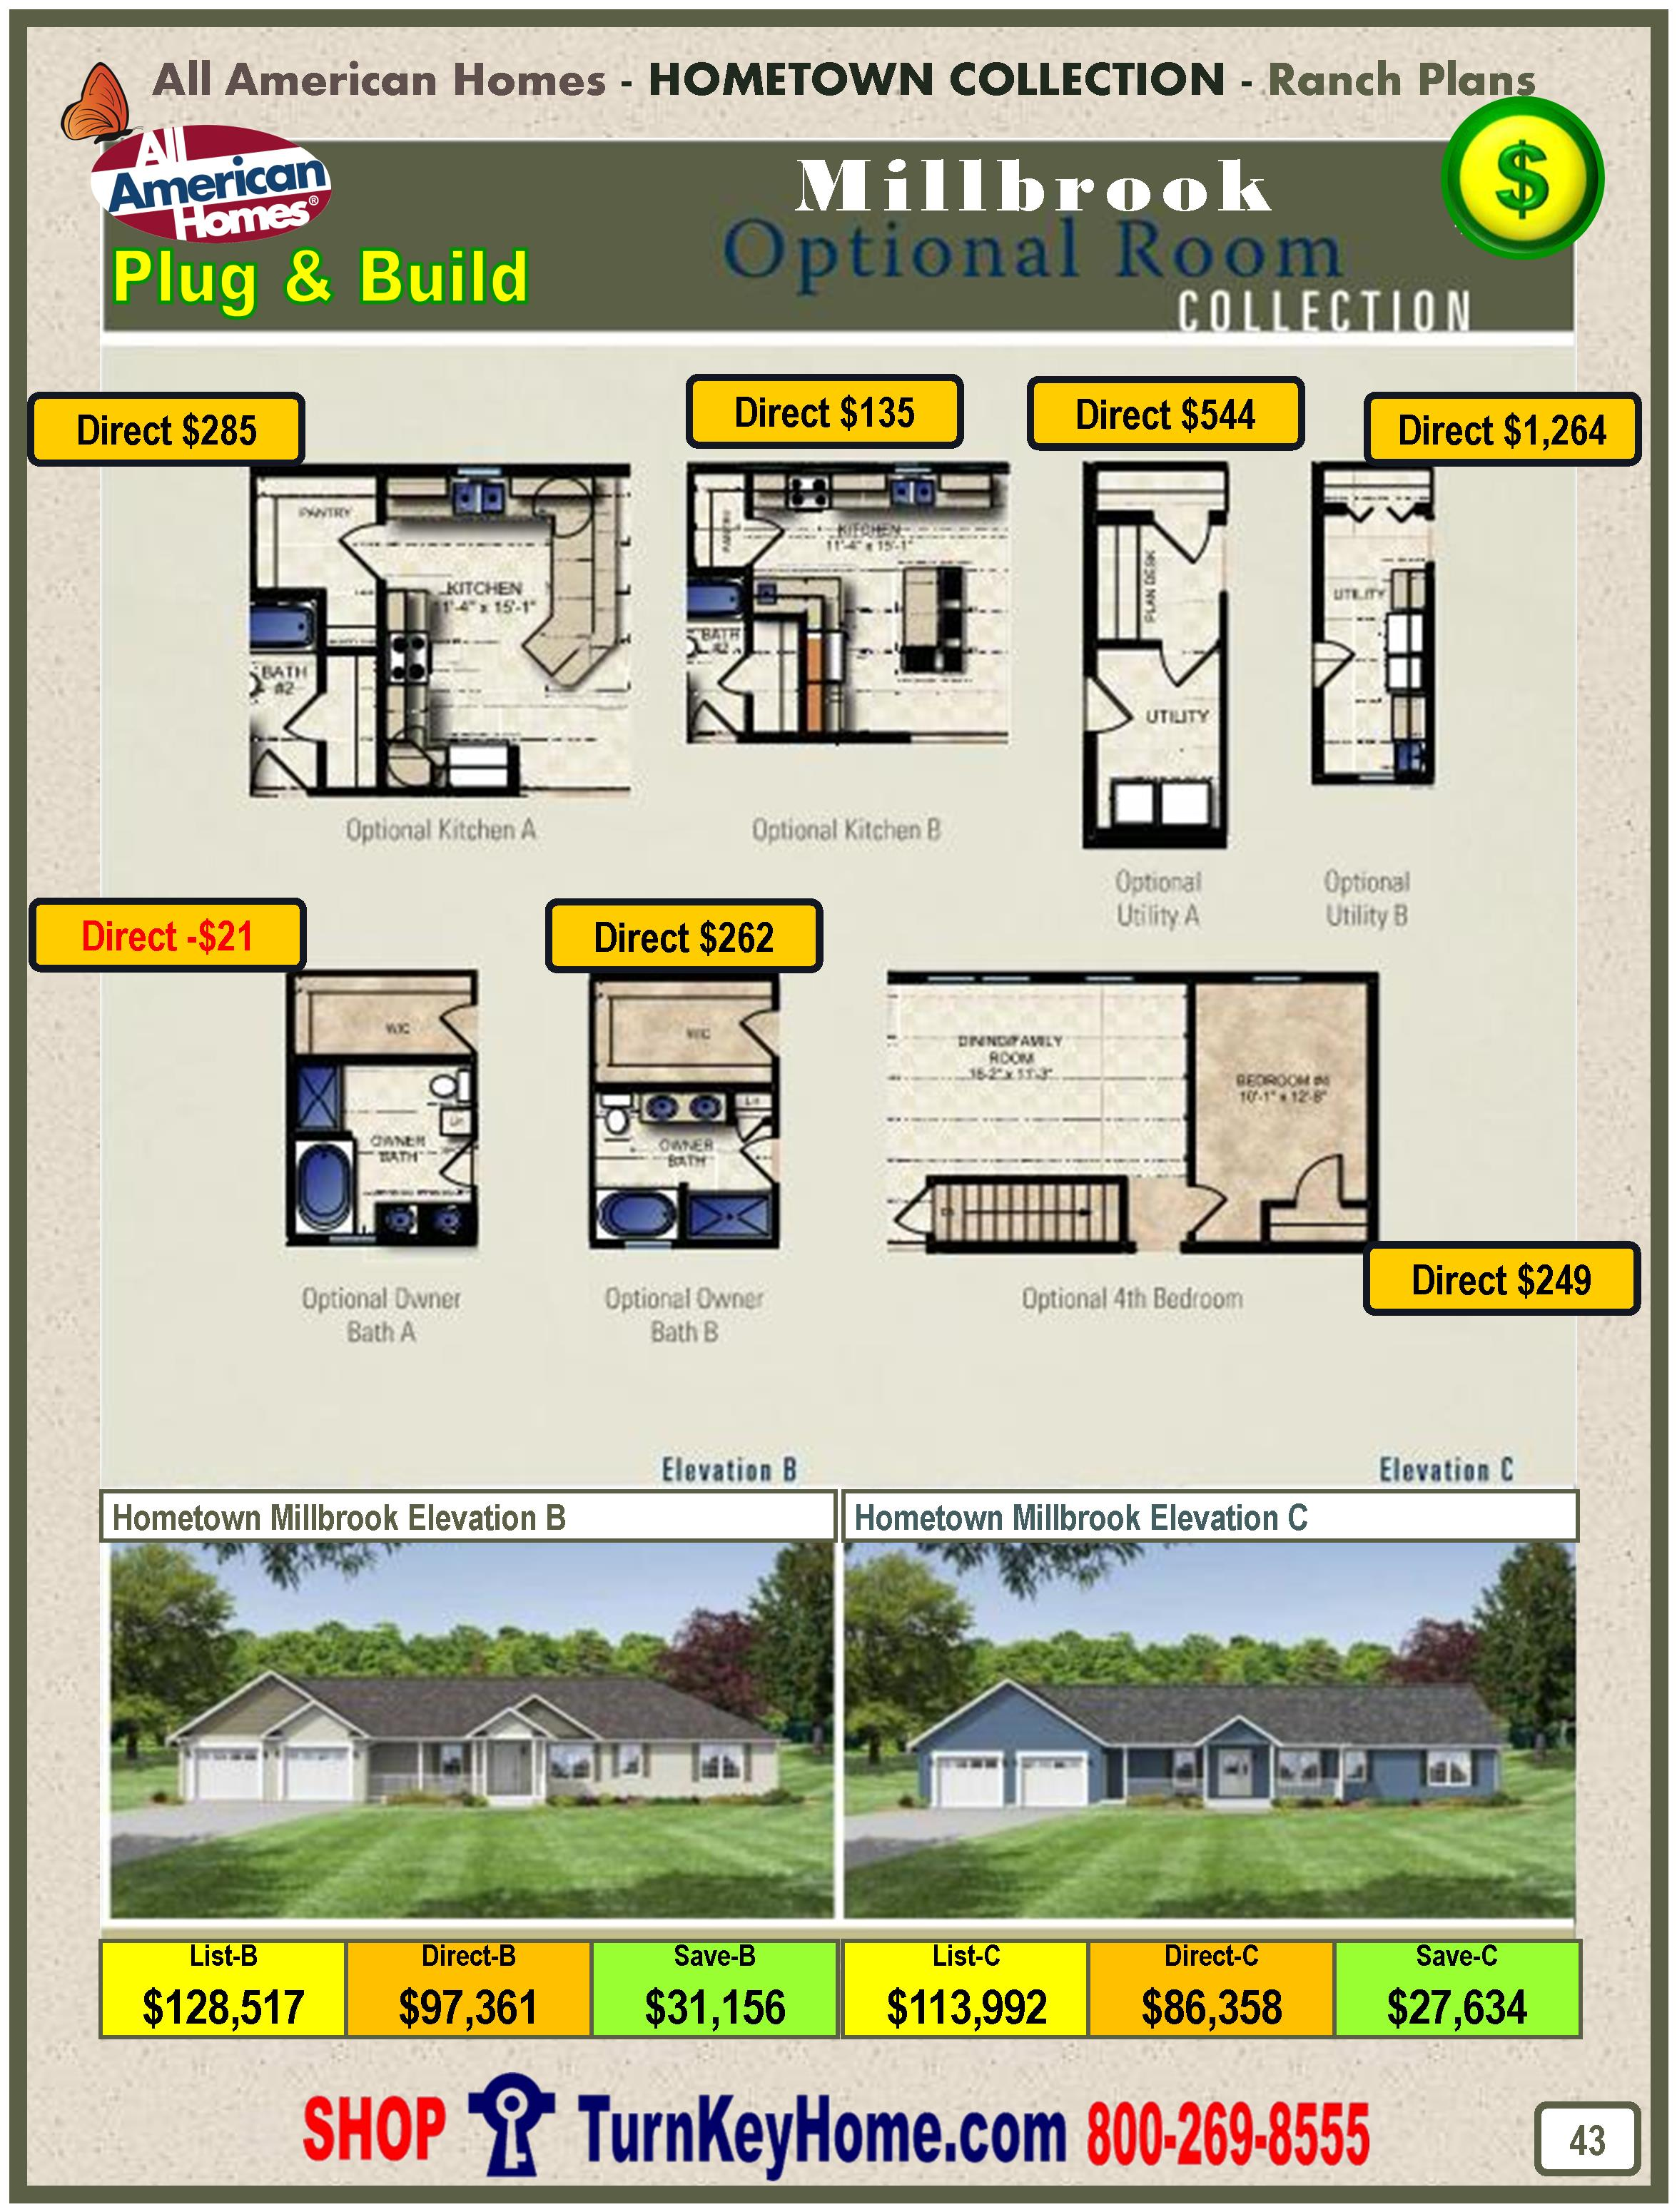 All American Homes millbrook all american home ranch hometown collection plan price